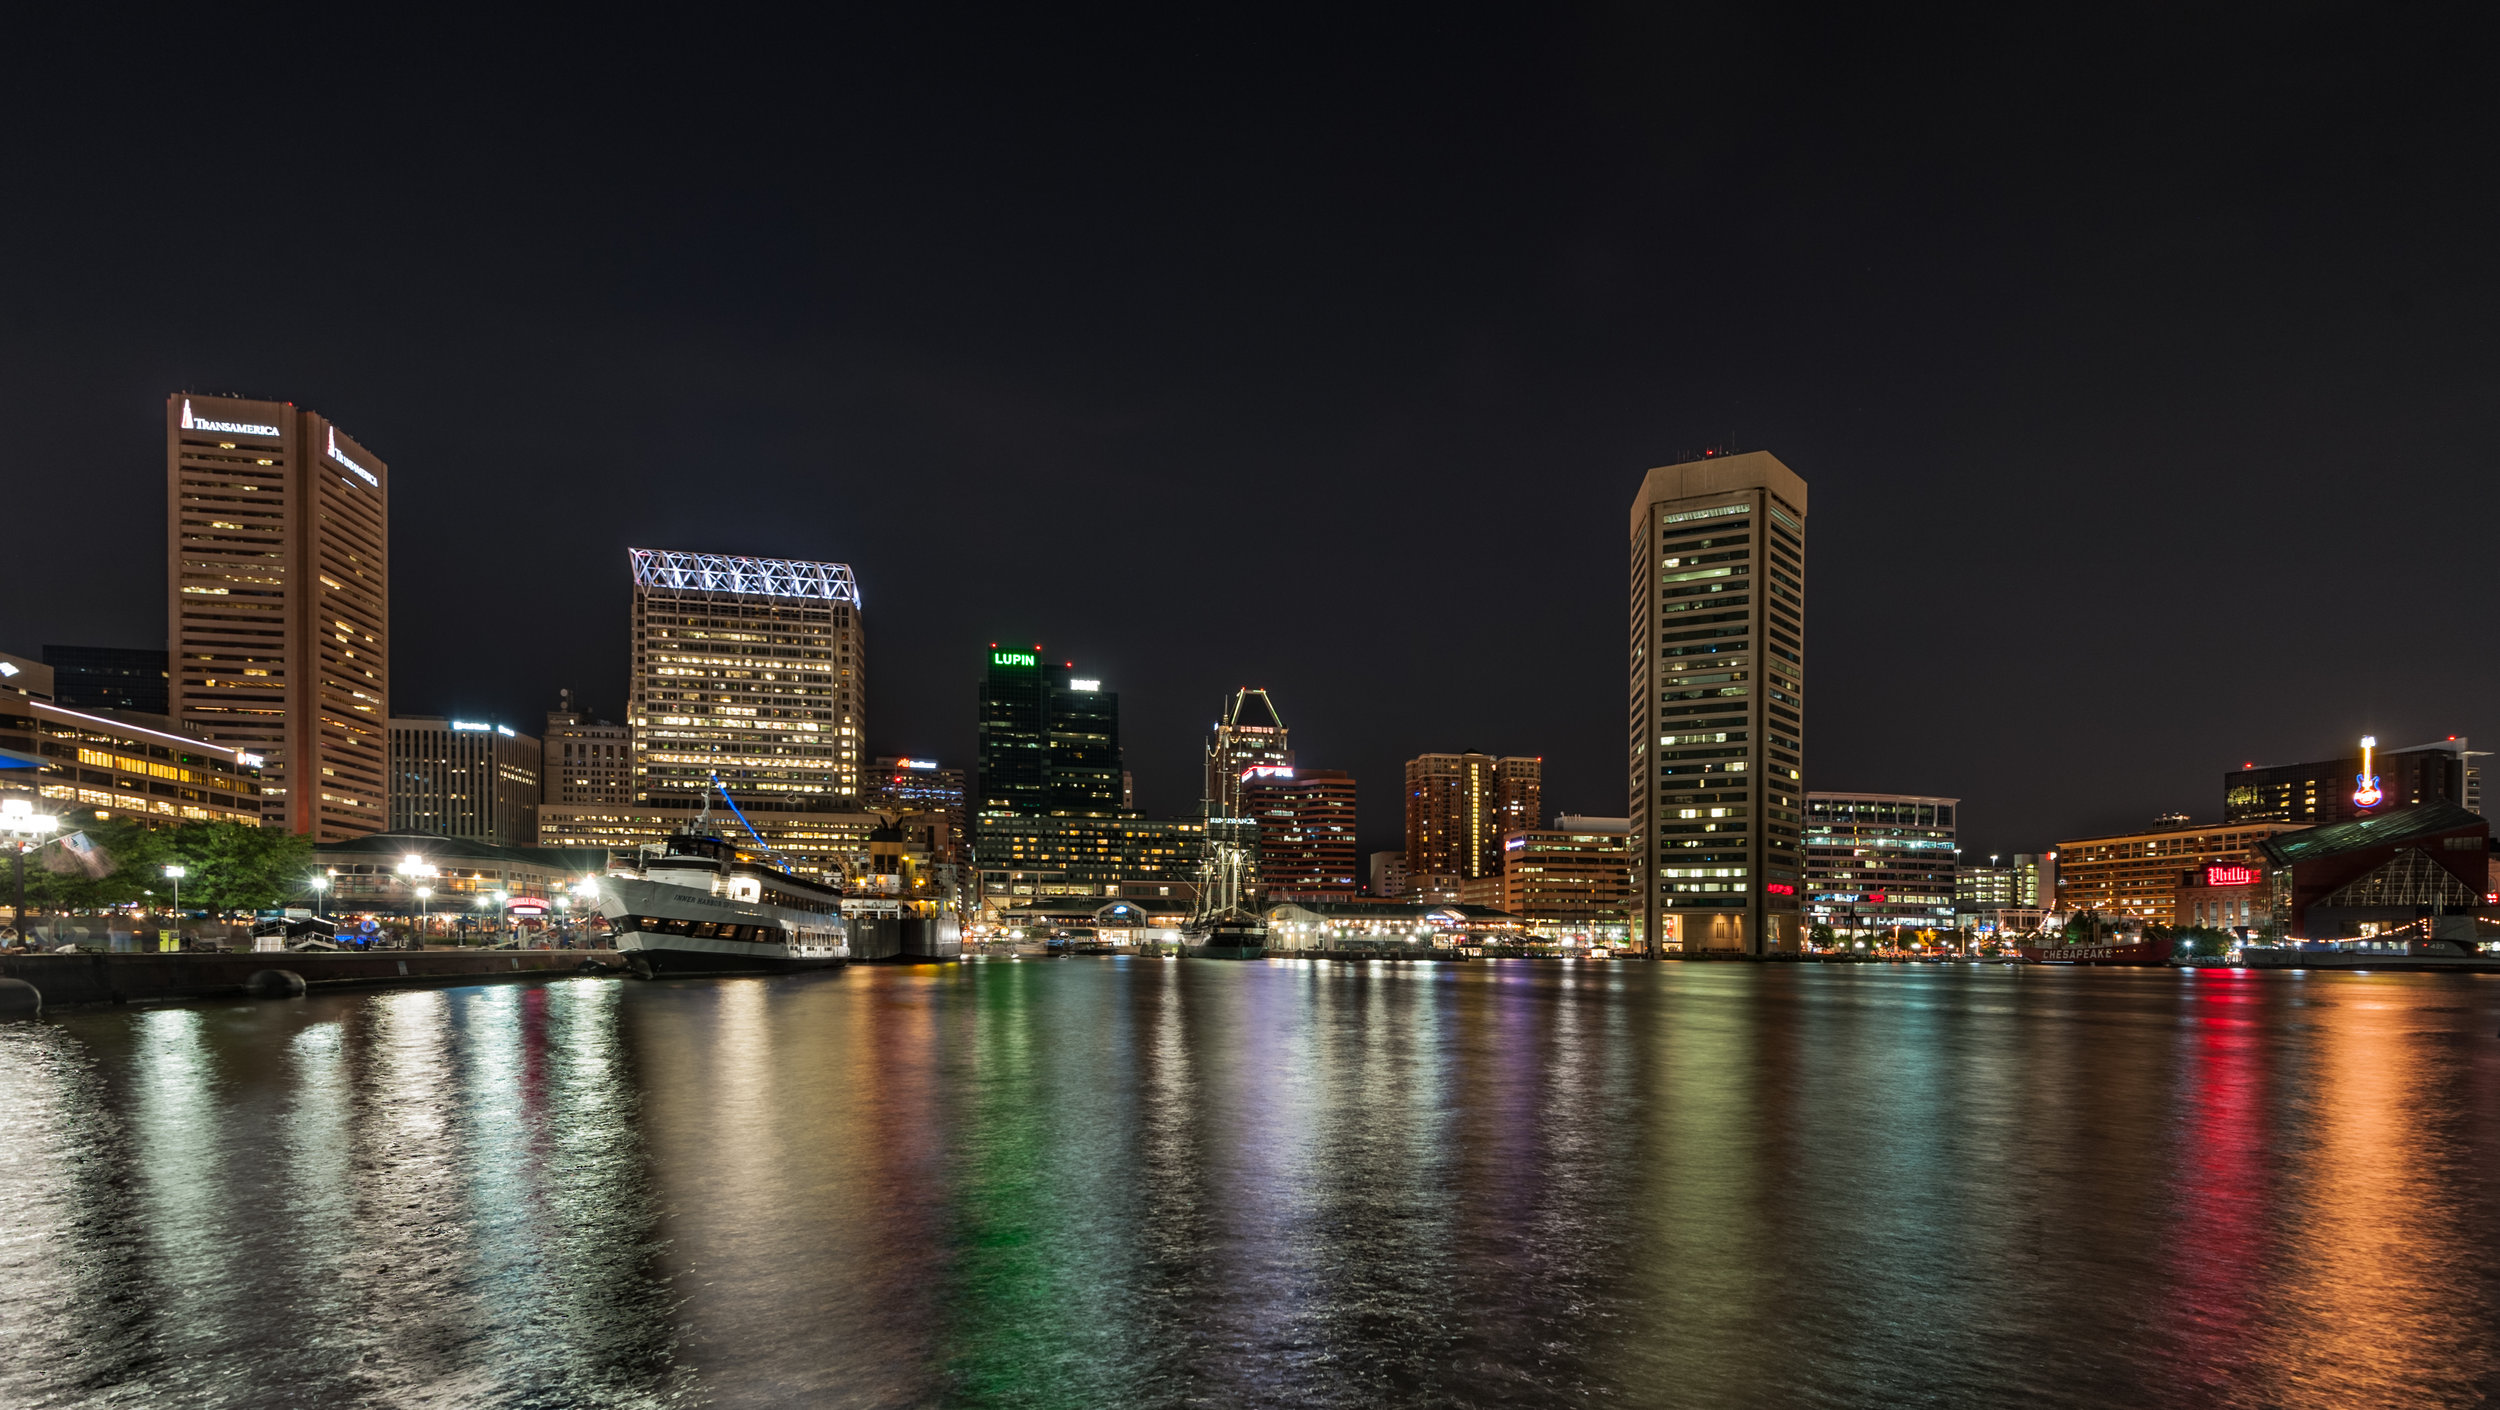 Baltimore during darker hour (click the image to view full size)